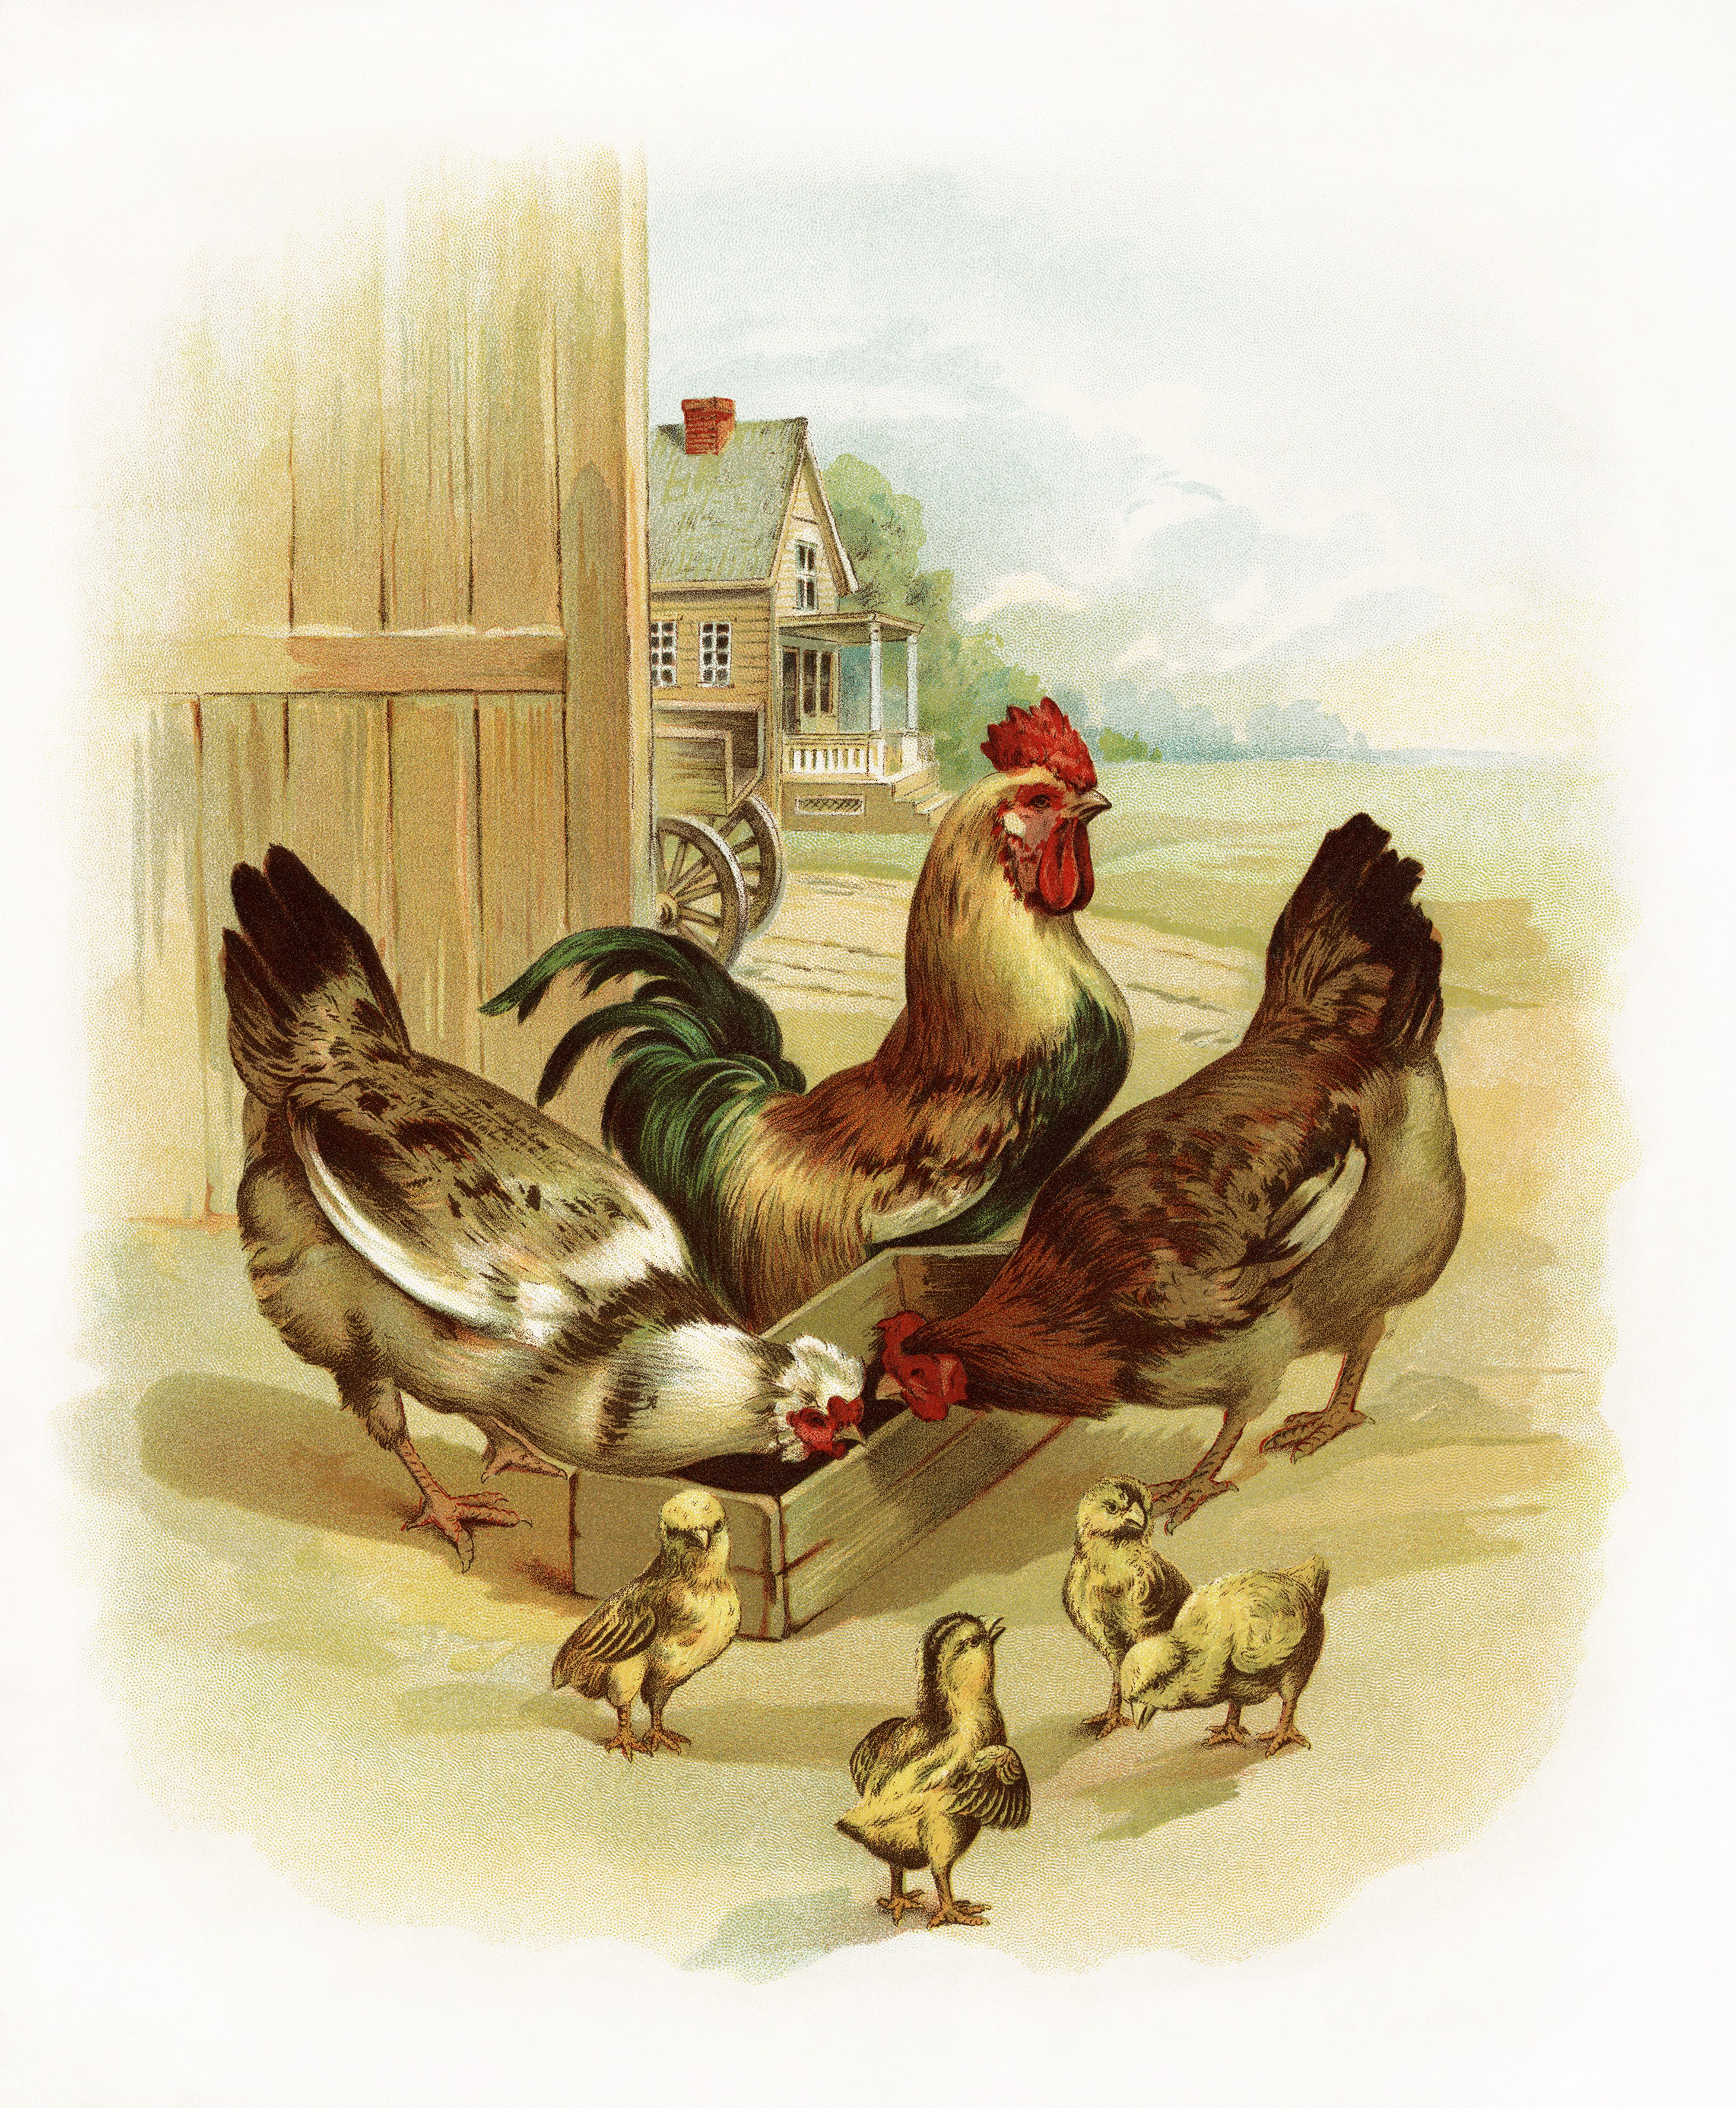 Free Vintage Image ~ Rooster, Chickens and Chicks at the Farm.